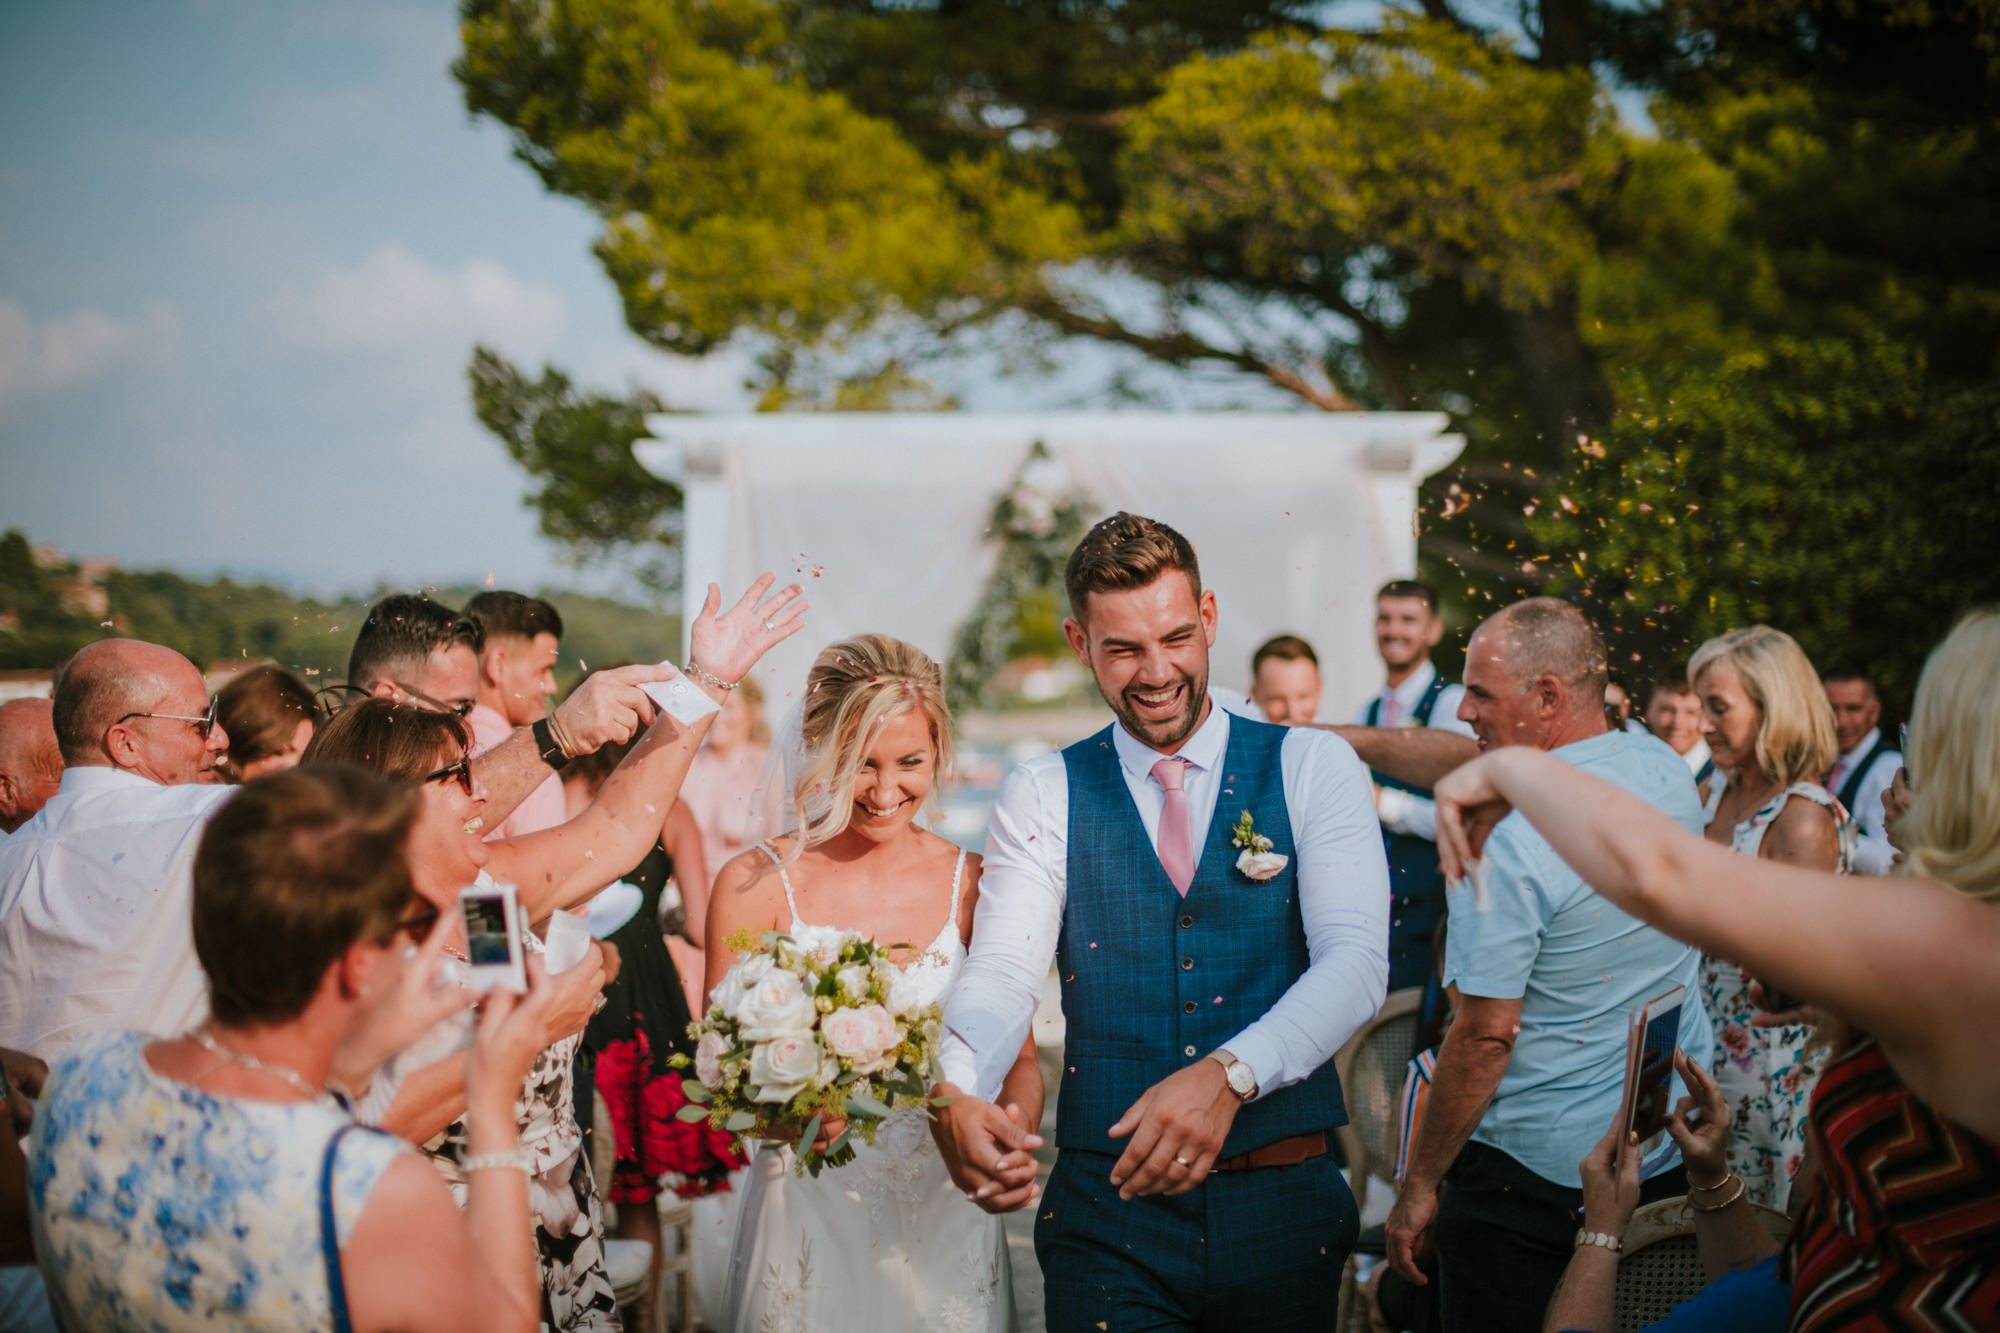 This image shows the couple just after they got married and finished the ceremony, they are laughing as they are passing through the guests who are throwing confetti on them.